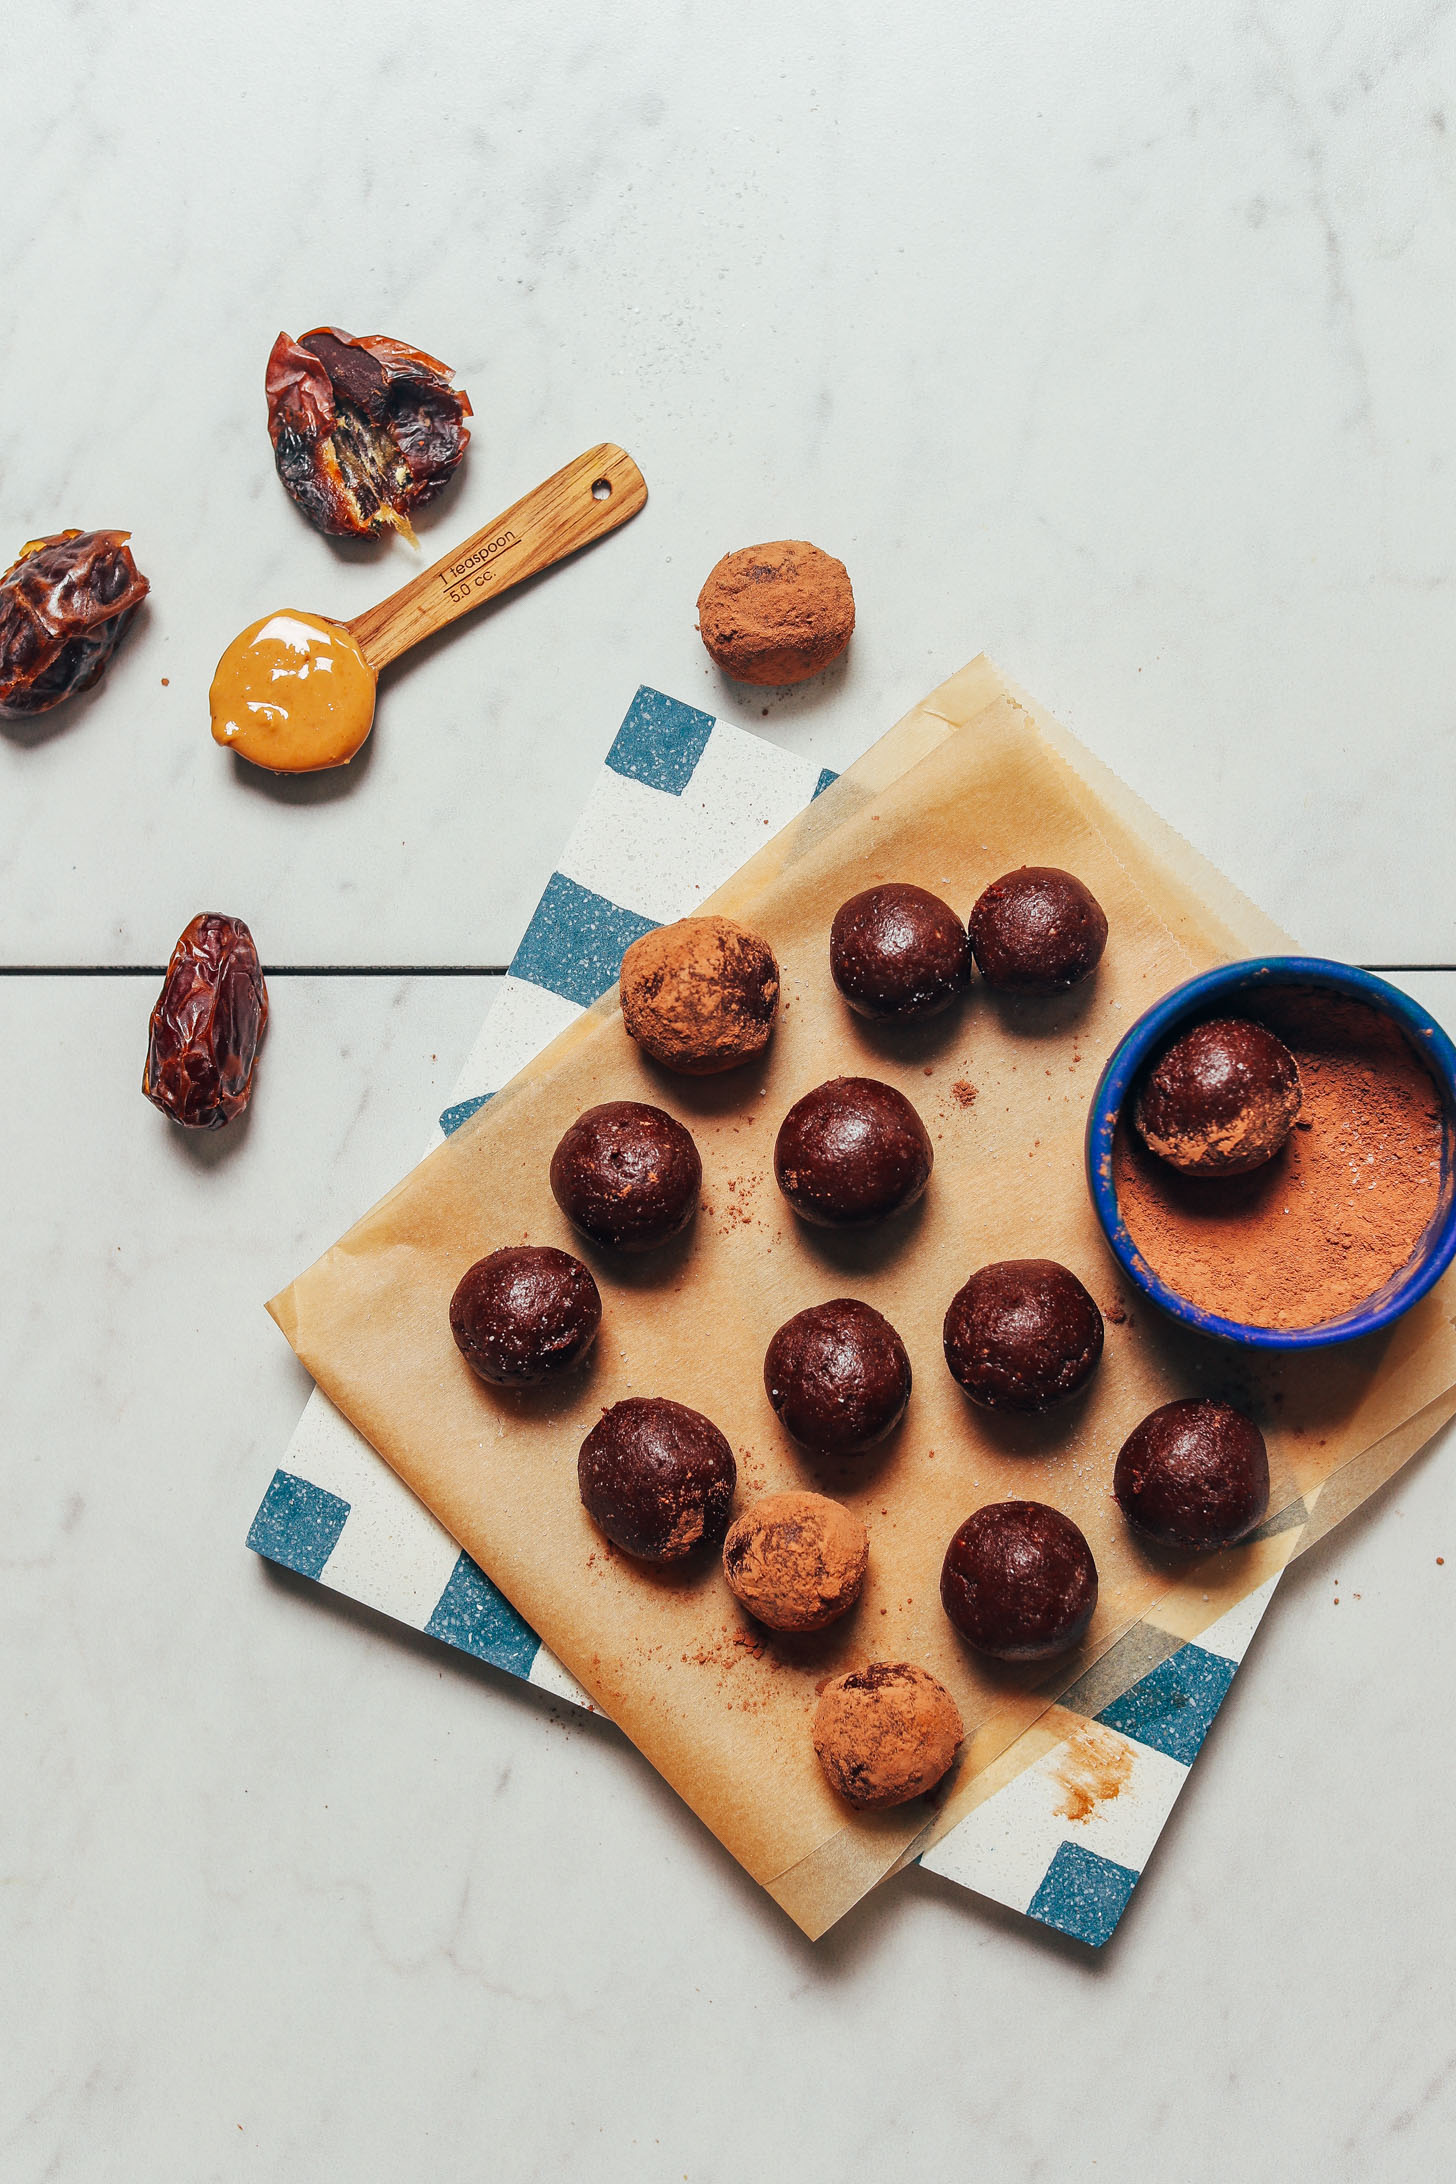 Dates, cashew butter, cacao powder, and a batch of freshly made Vegan Chocolate Truffles